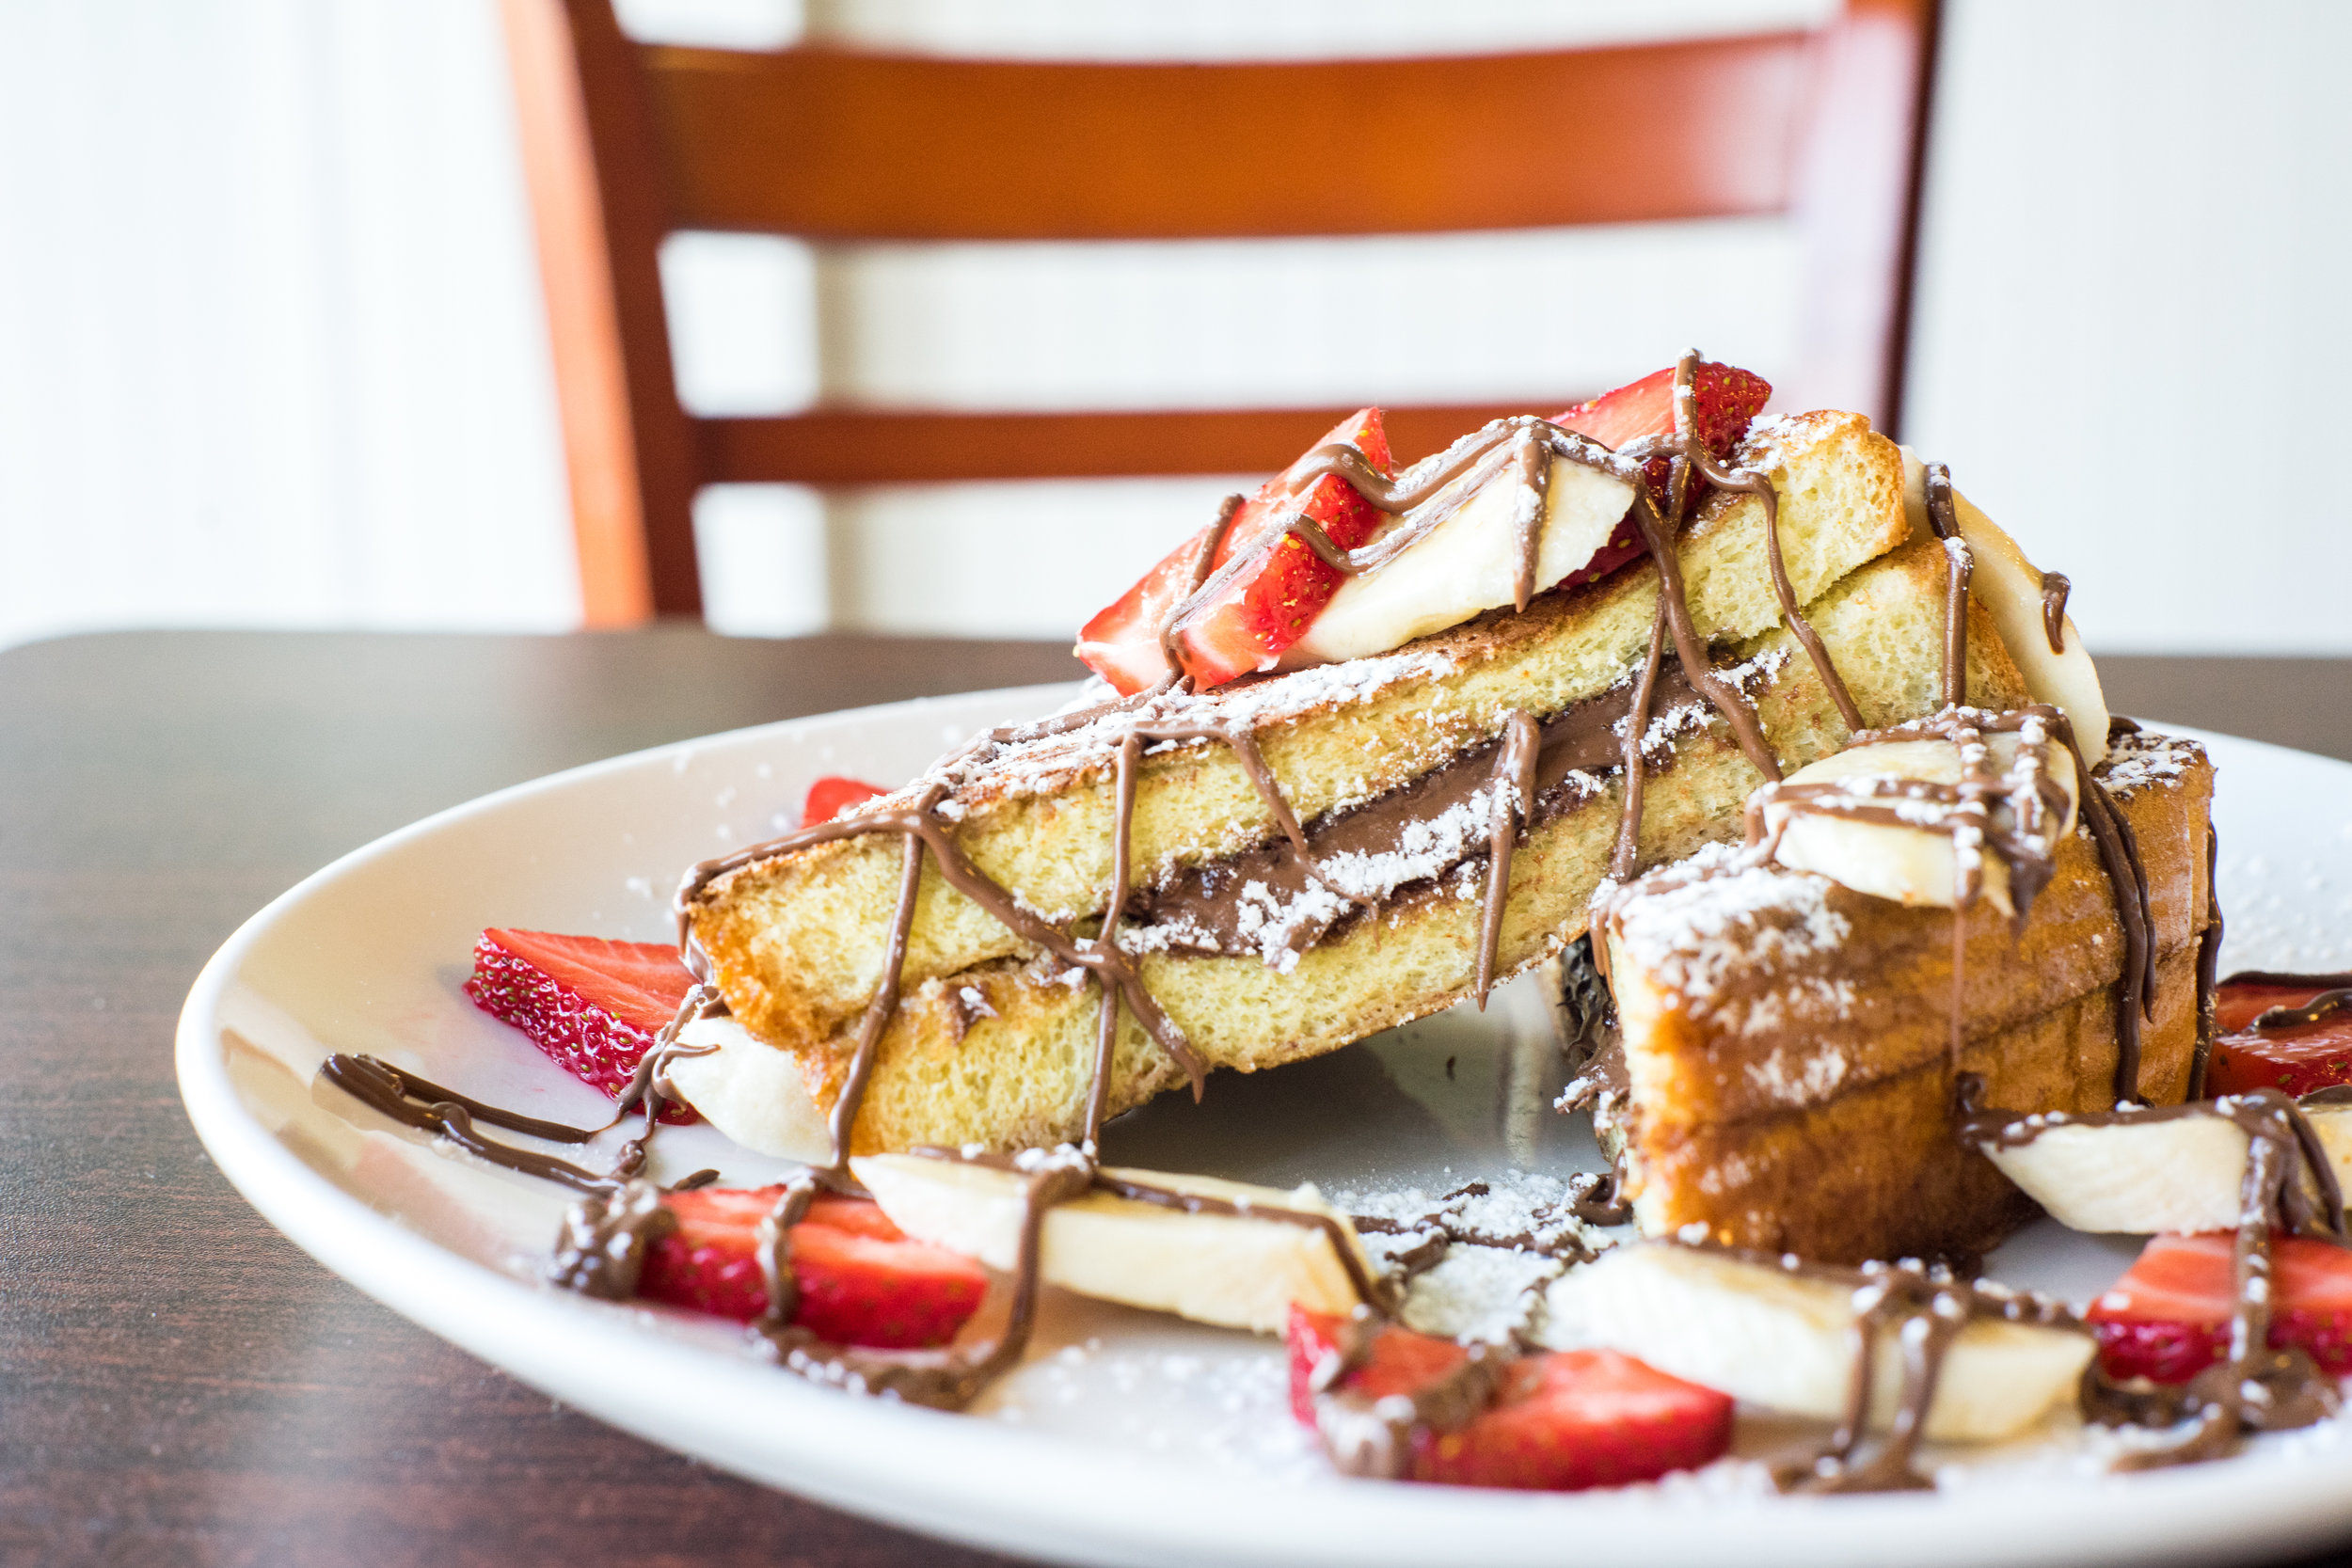 Nutella French Toast - Havertown Grille - 082119-5.jpg